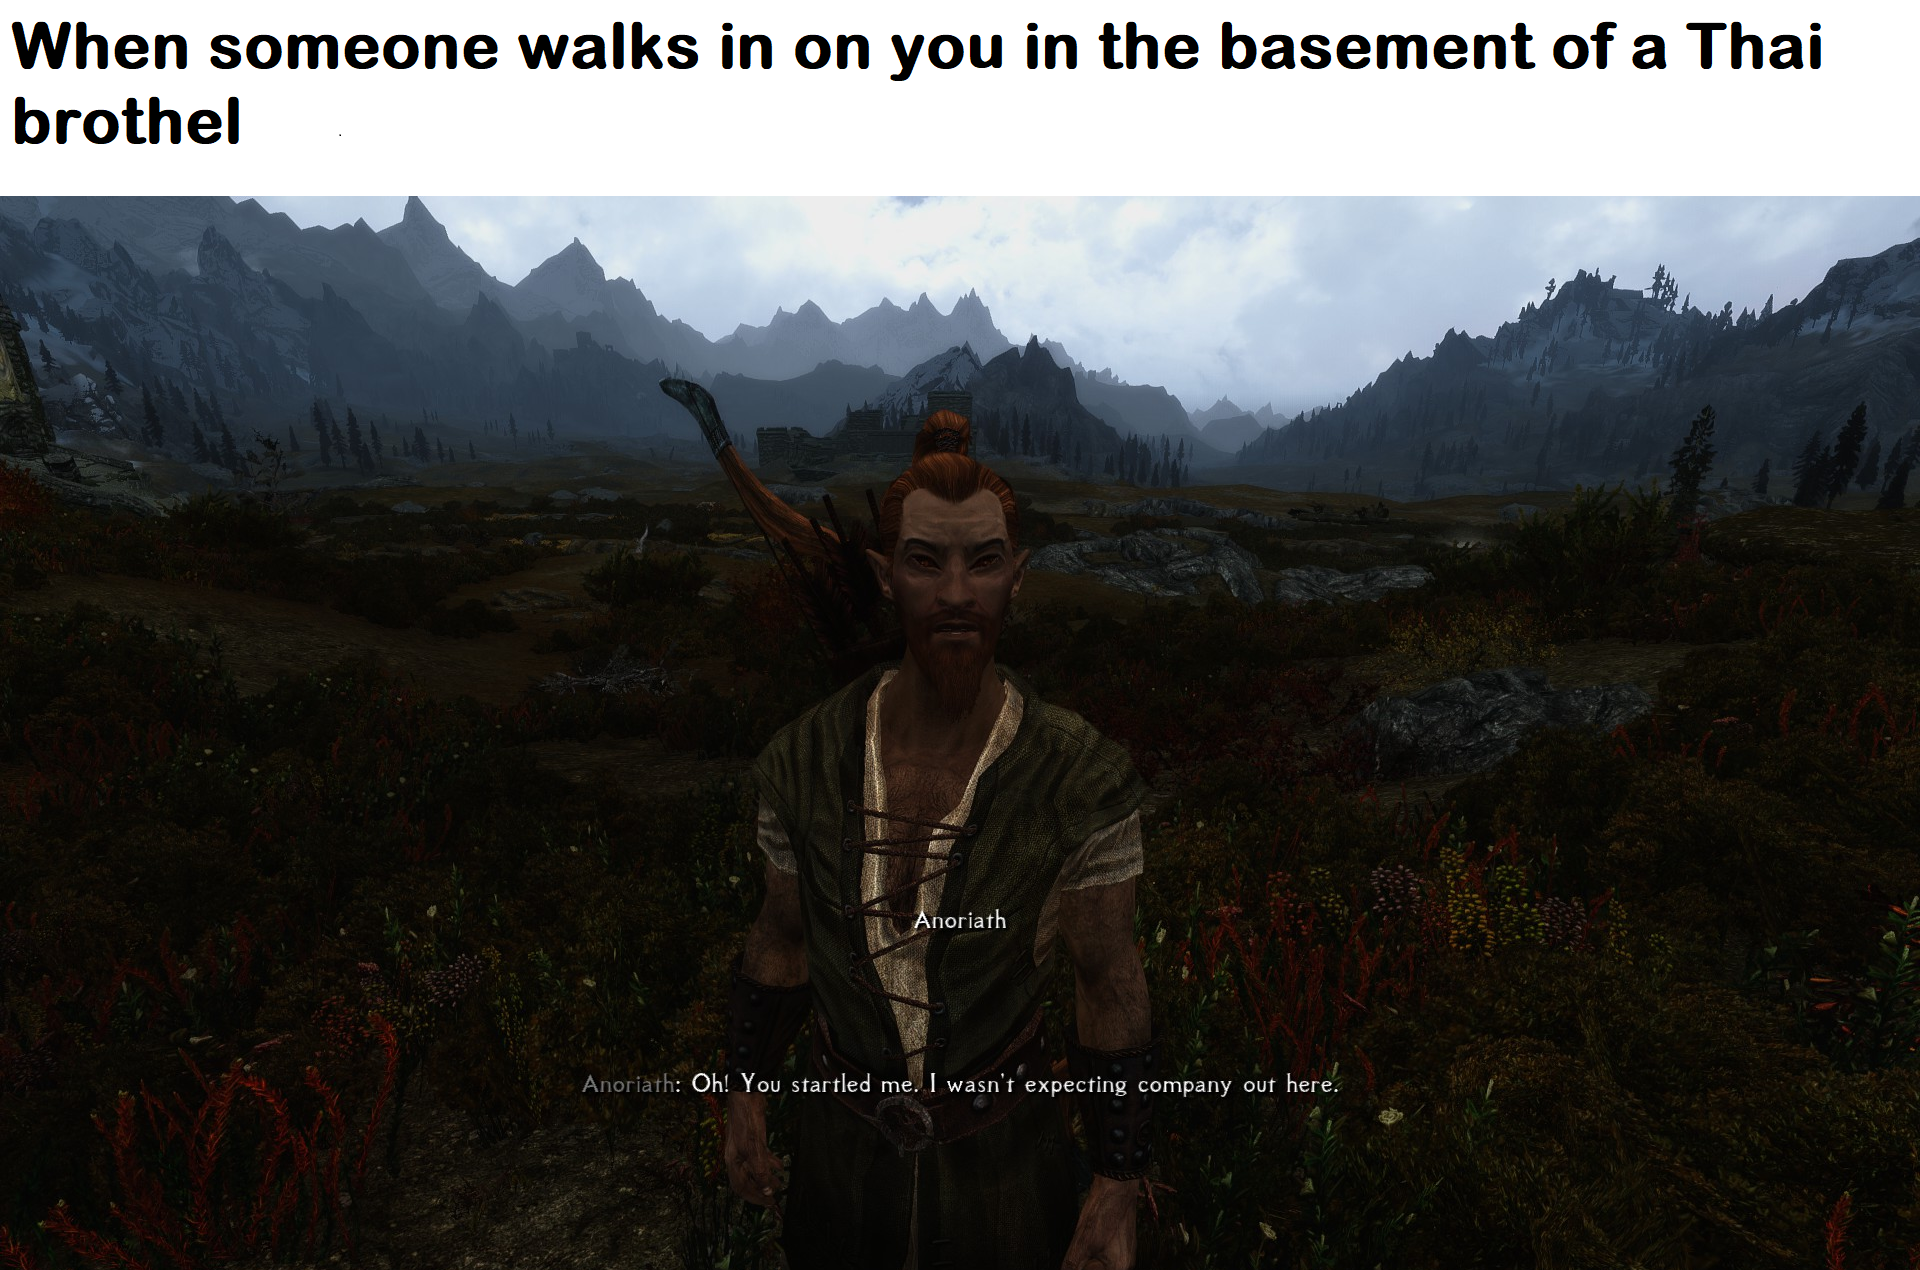 People always walk in at the worst times